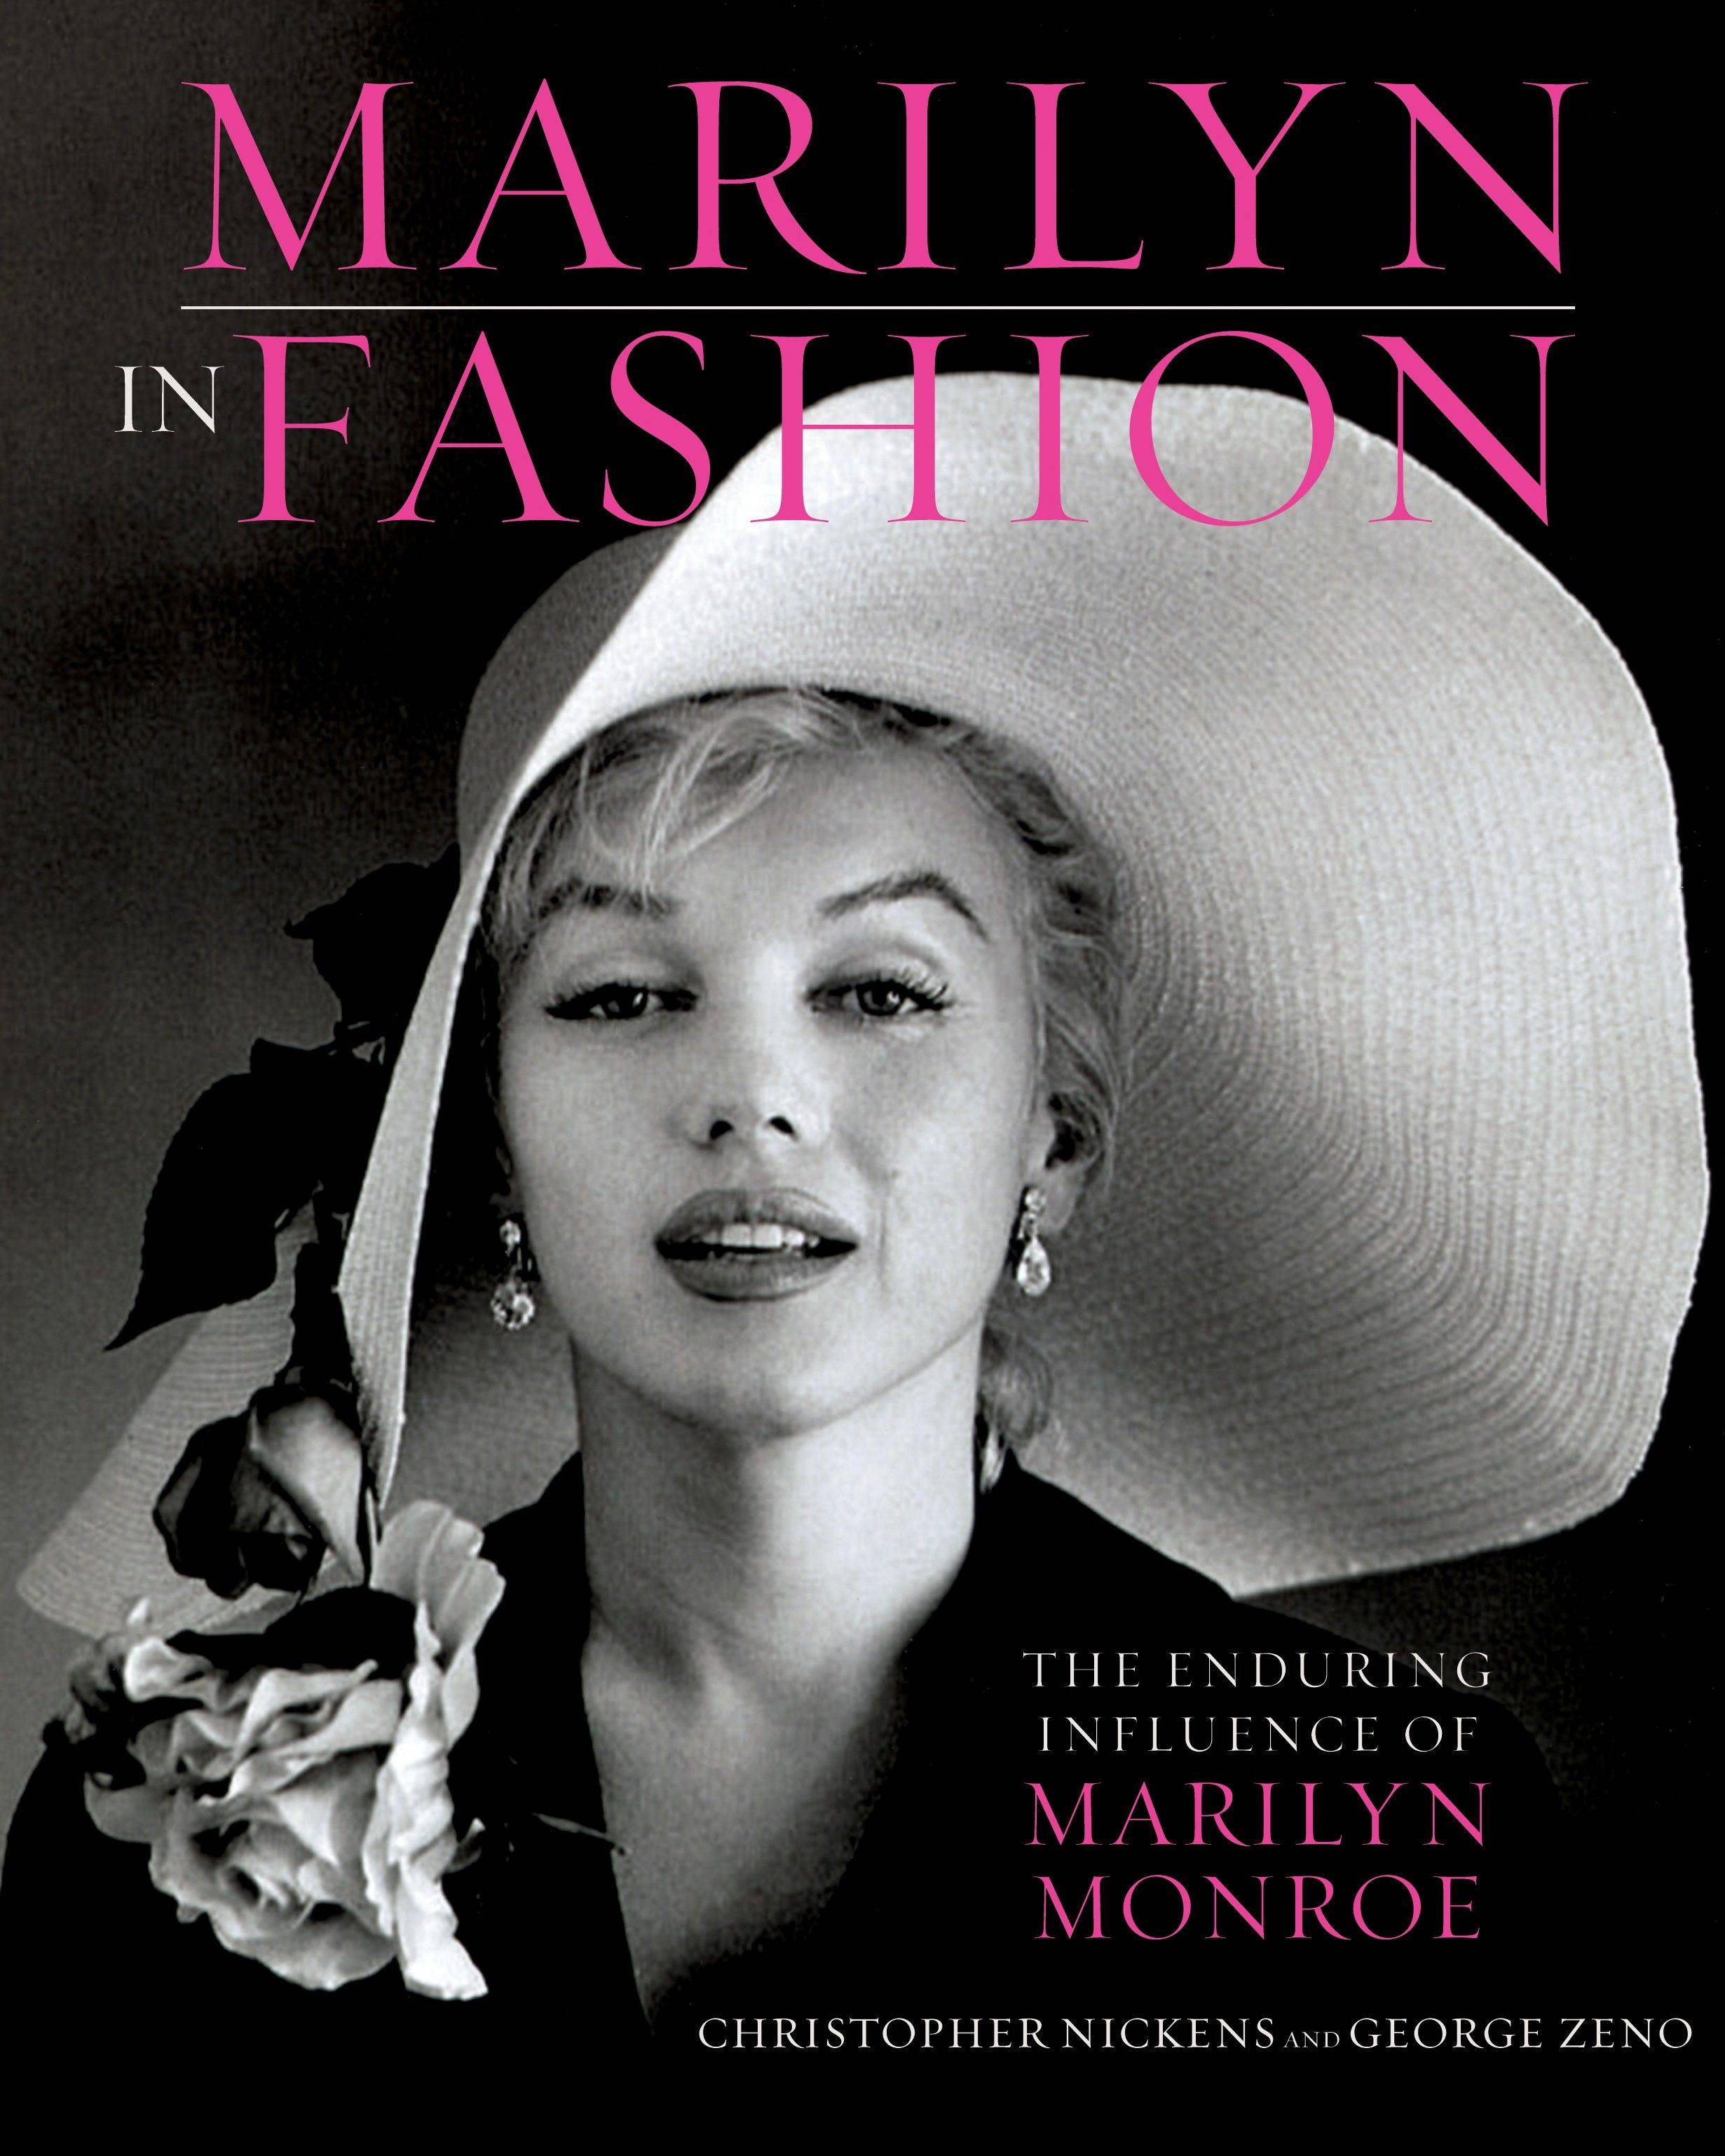 """Marilyn in Fashion: The Enduring Influence of Marilyn Monroe"" by Christopher Nickens and George Zeno"